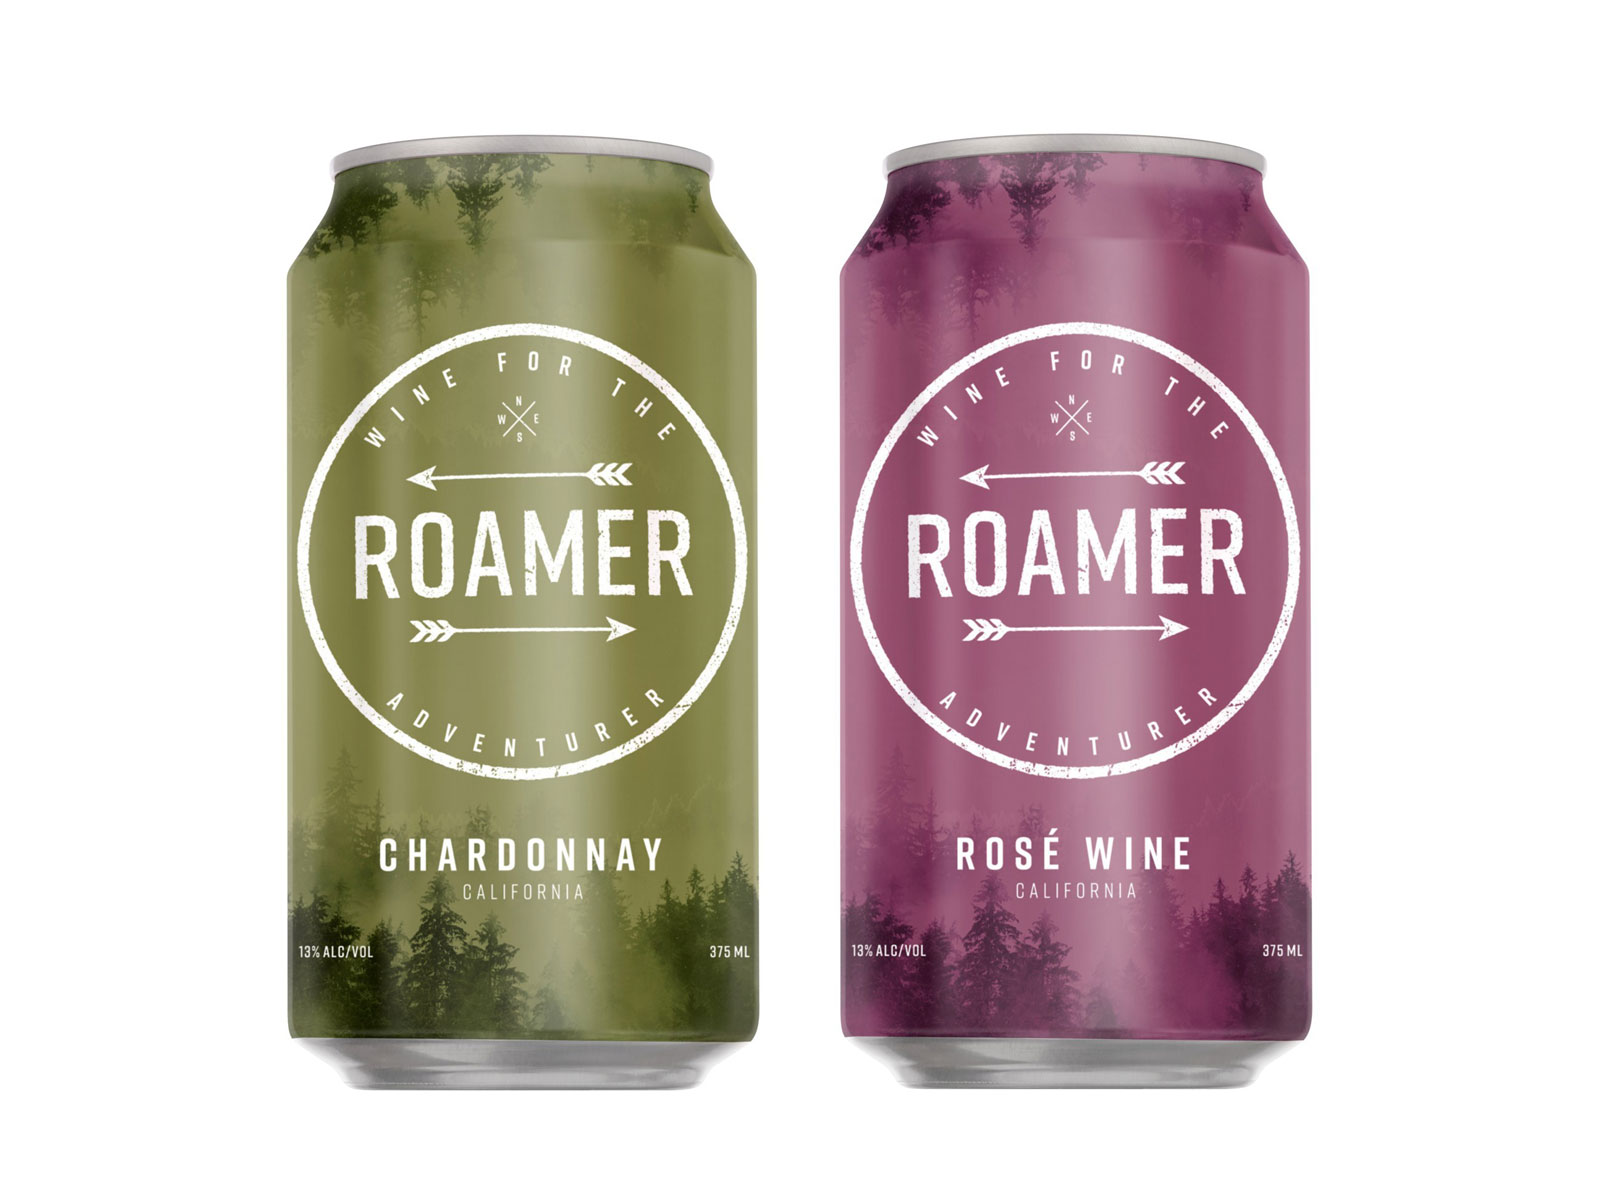 7-Eleven Sells Its Own Brand of Canned Wine